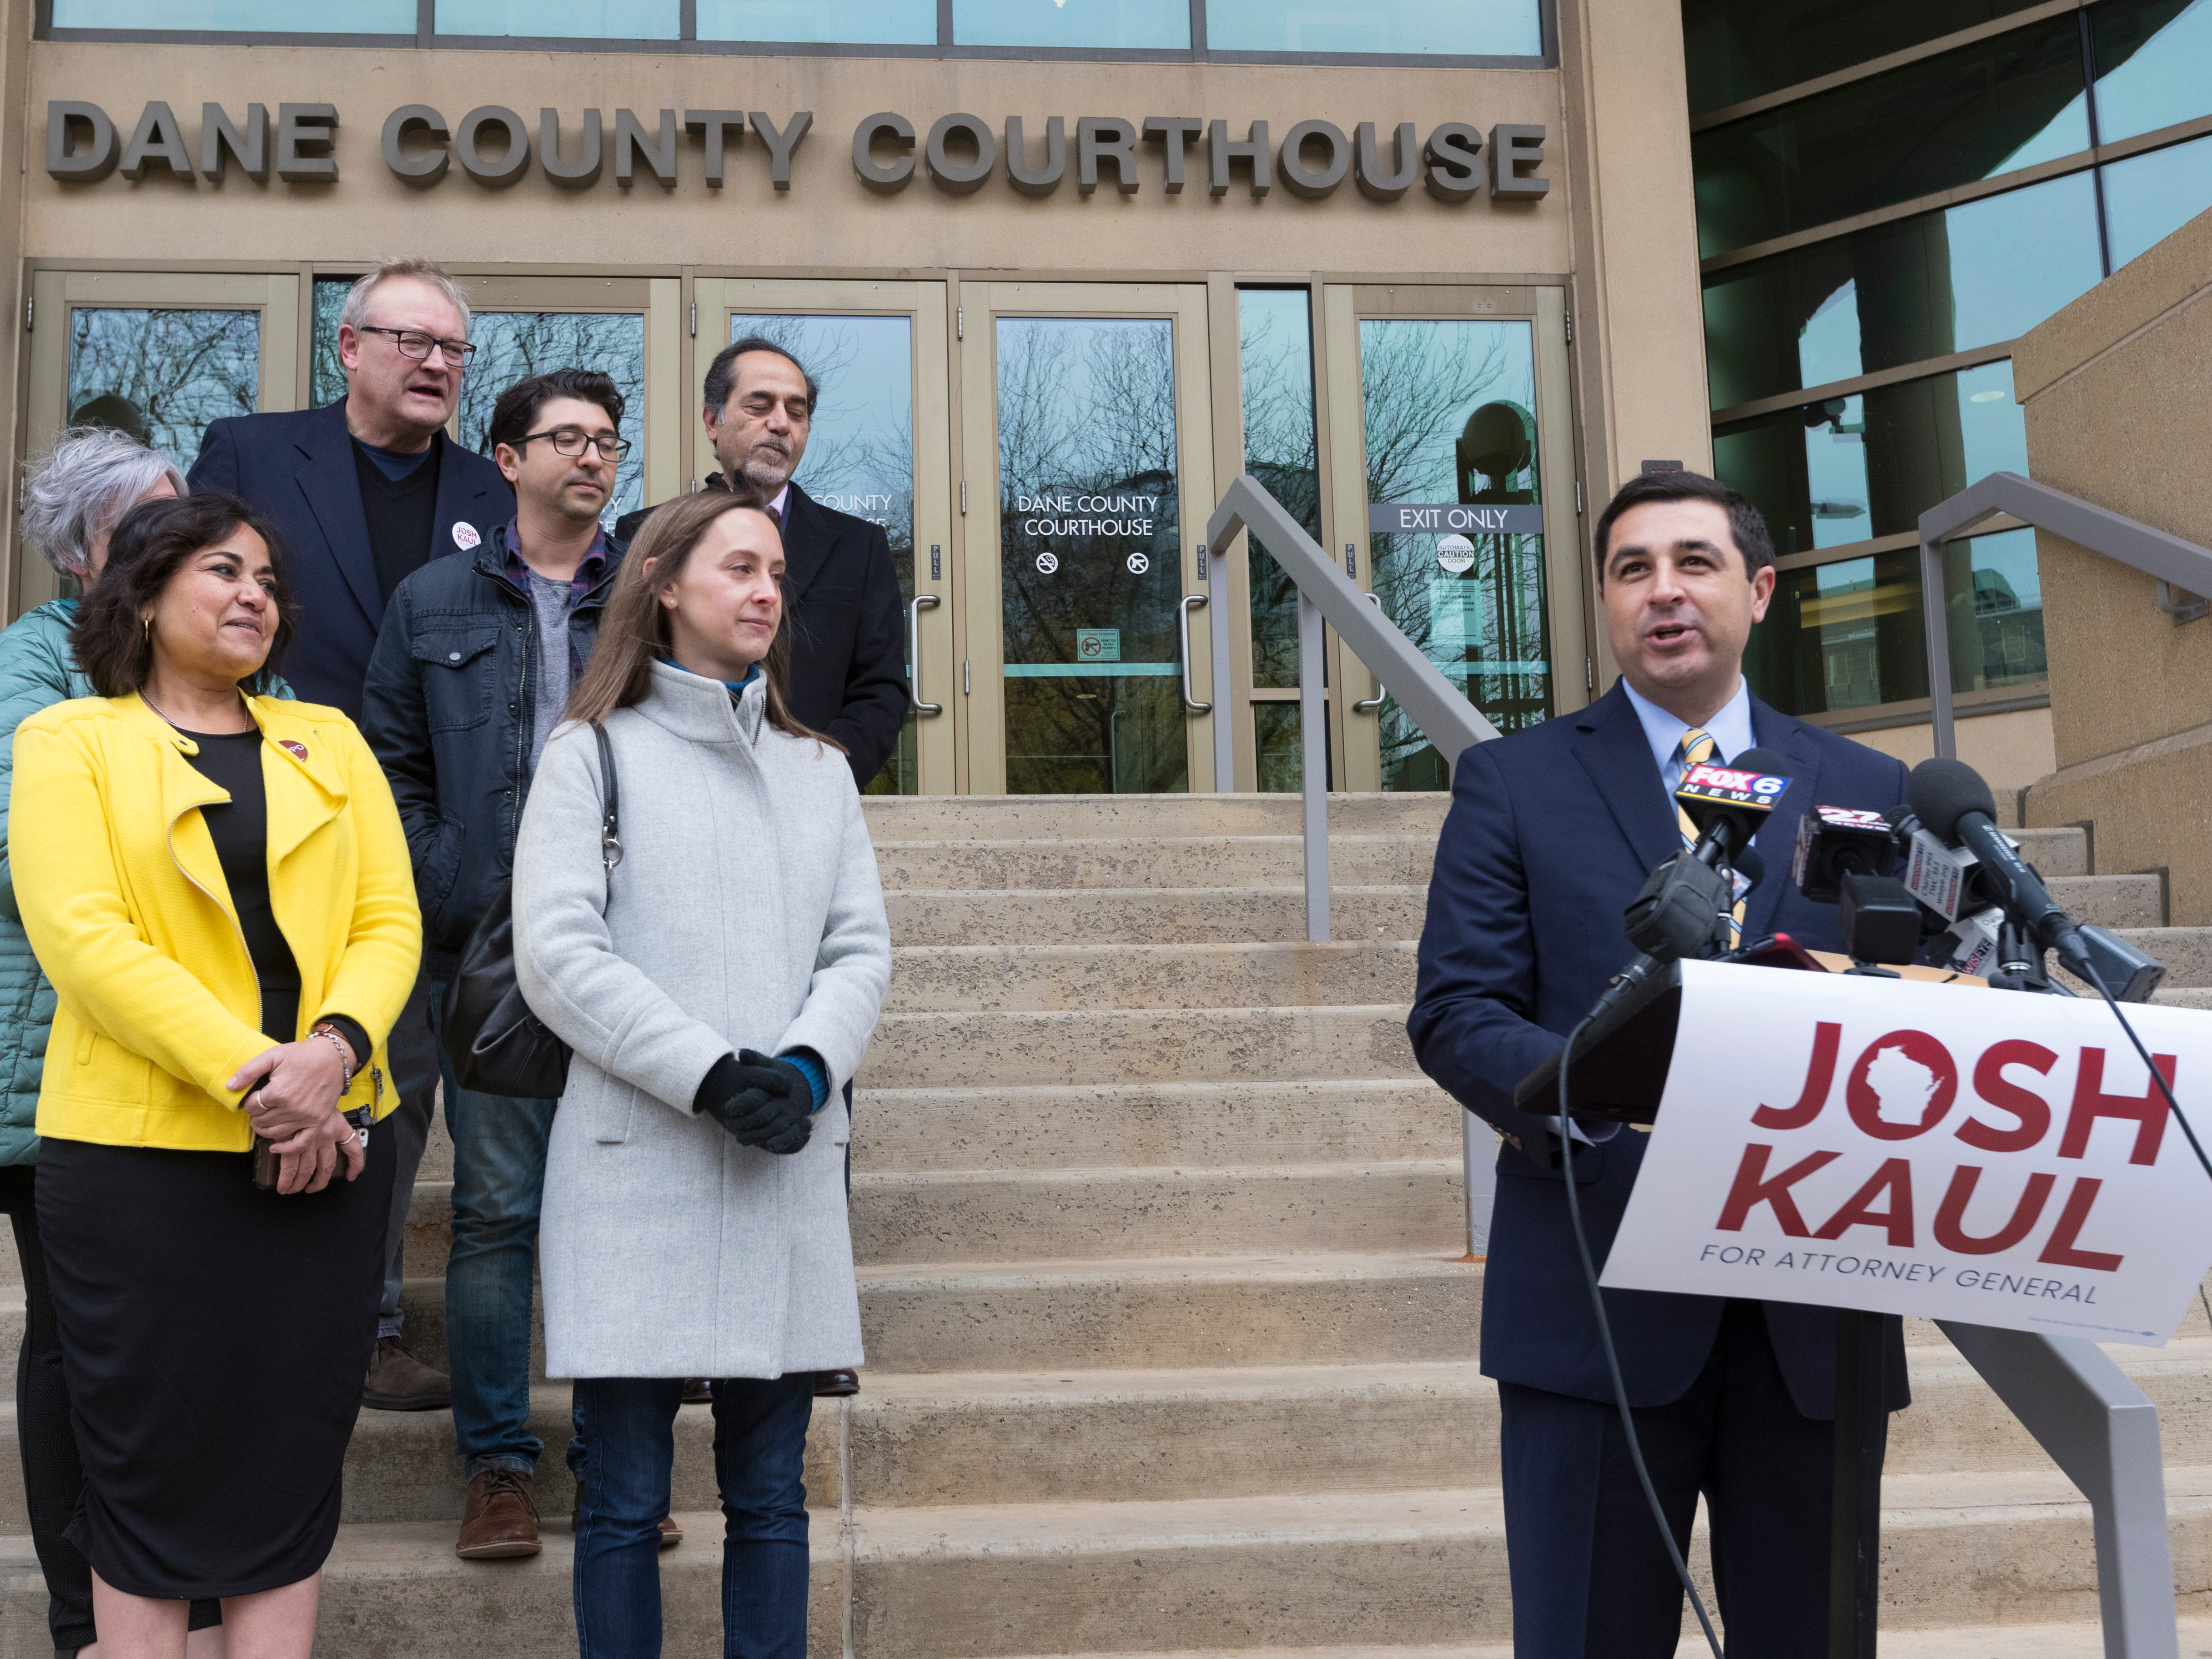 Democrat Josh Kaul (right) claims victory in the attorney general's race during a news conference at the Dane County Courthouse in Madison.